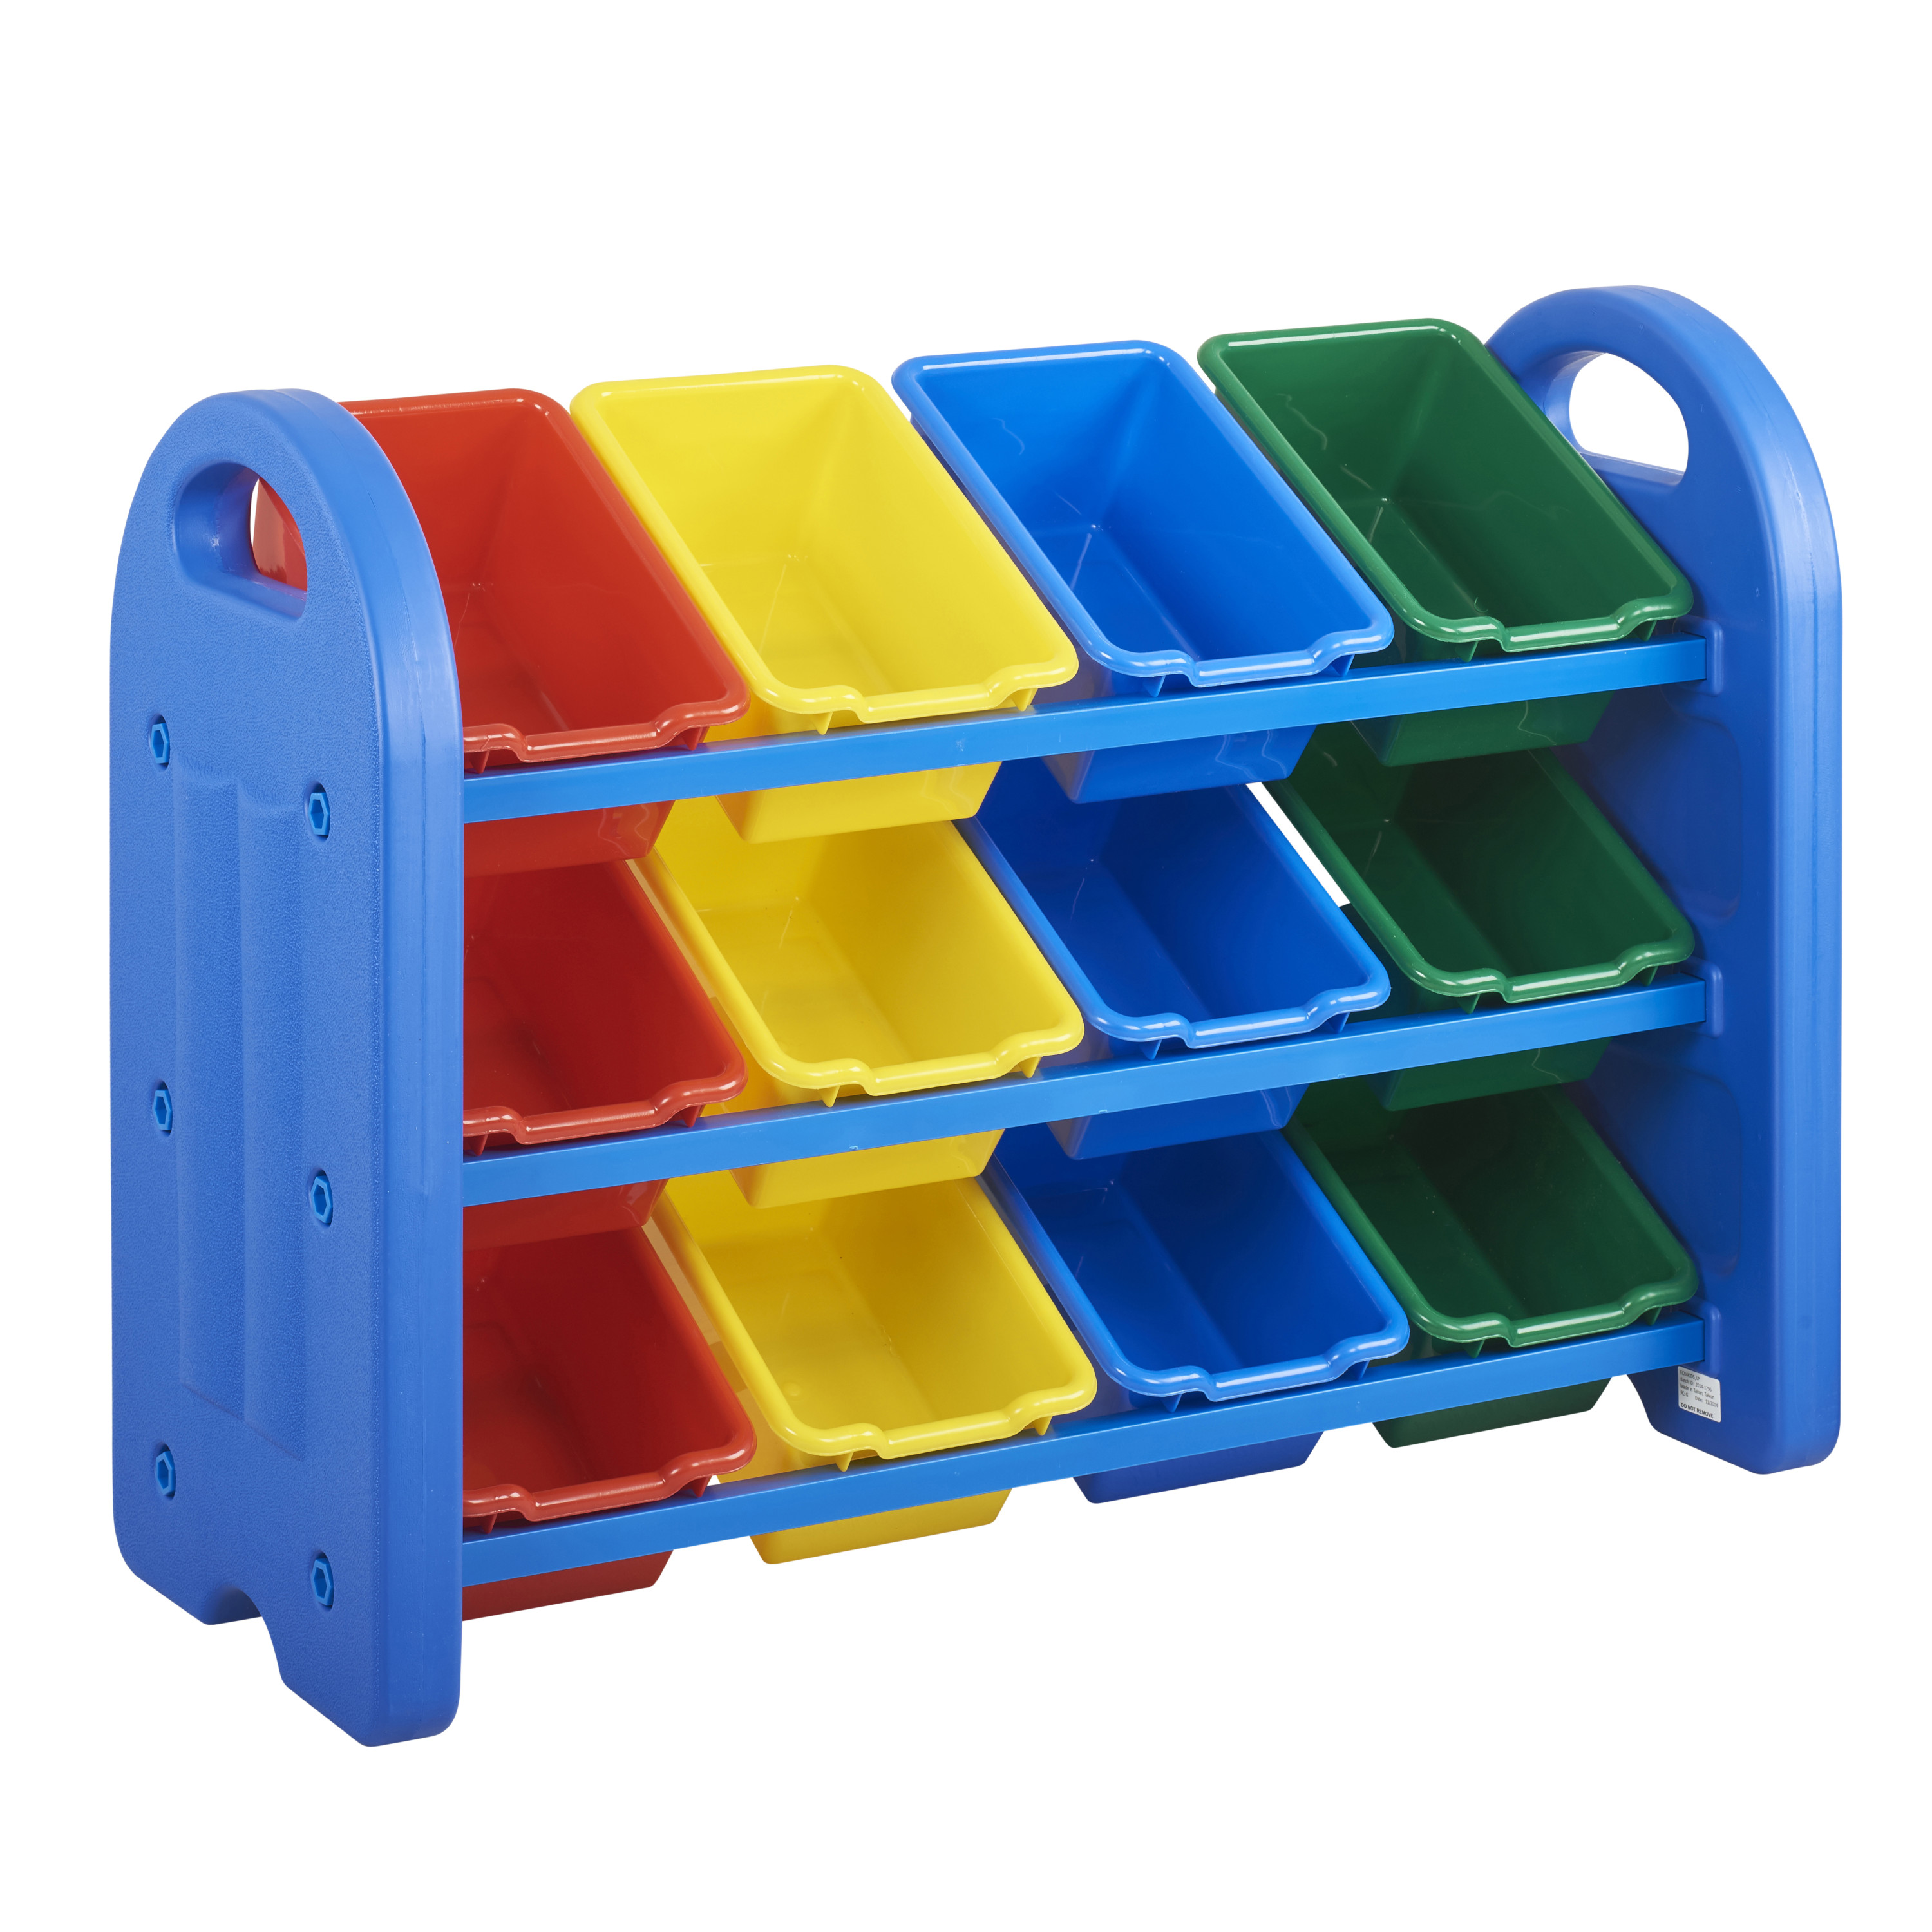 3-Tier Storage Organizer with Assorted Bins - Blue